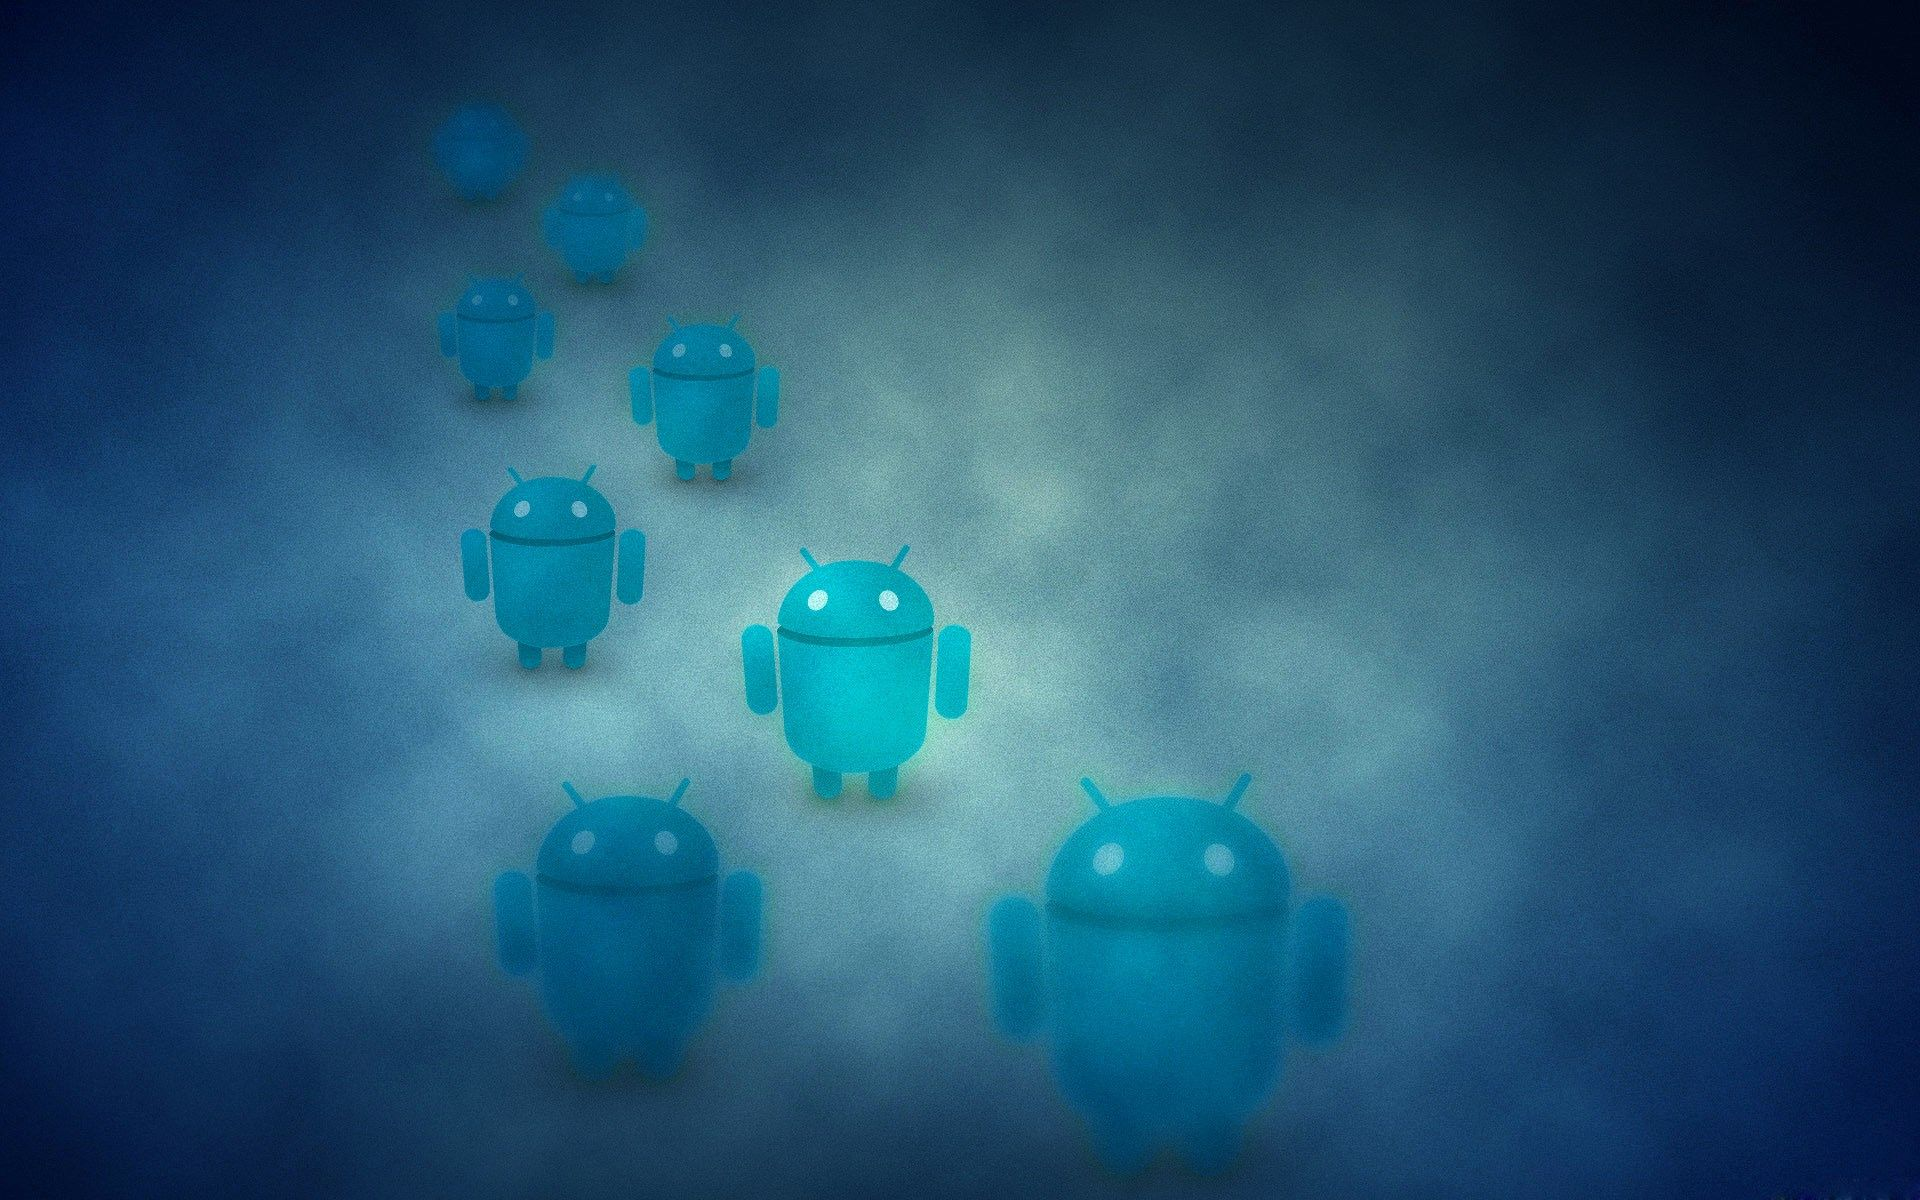 android tablet wallpaper free